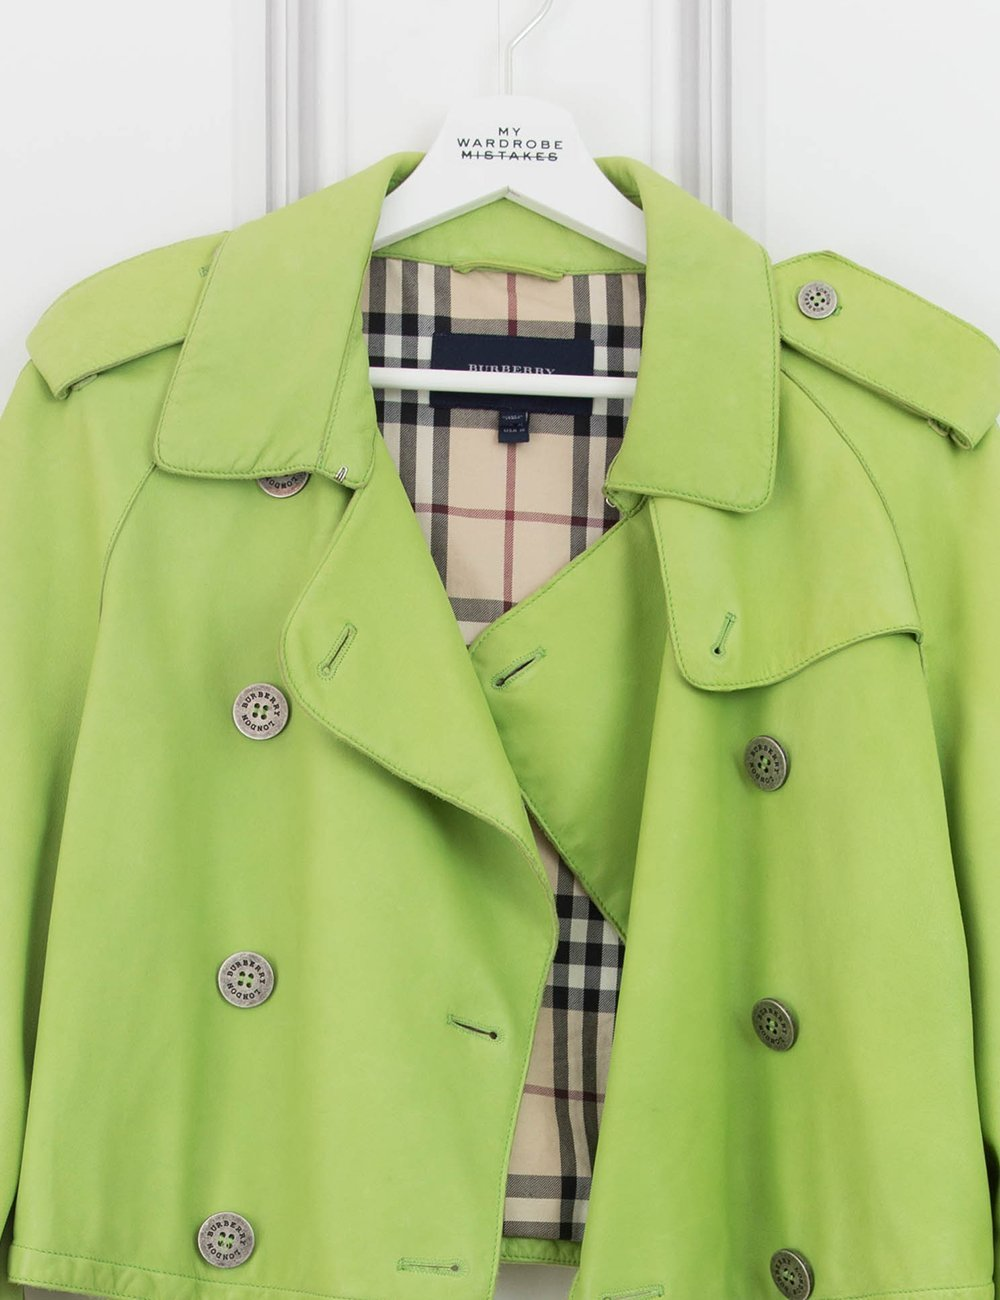 BURBERRY CLOTHING green Cropped jacket 12UK- My Wardrobe Mistakes